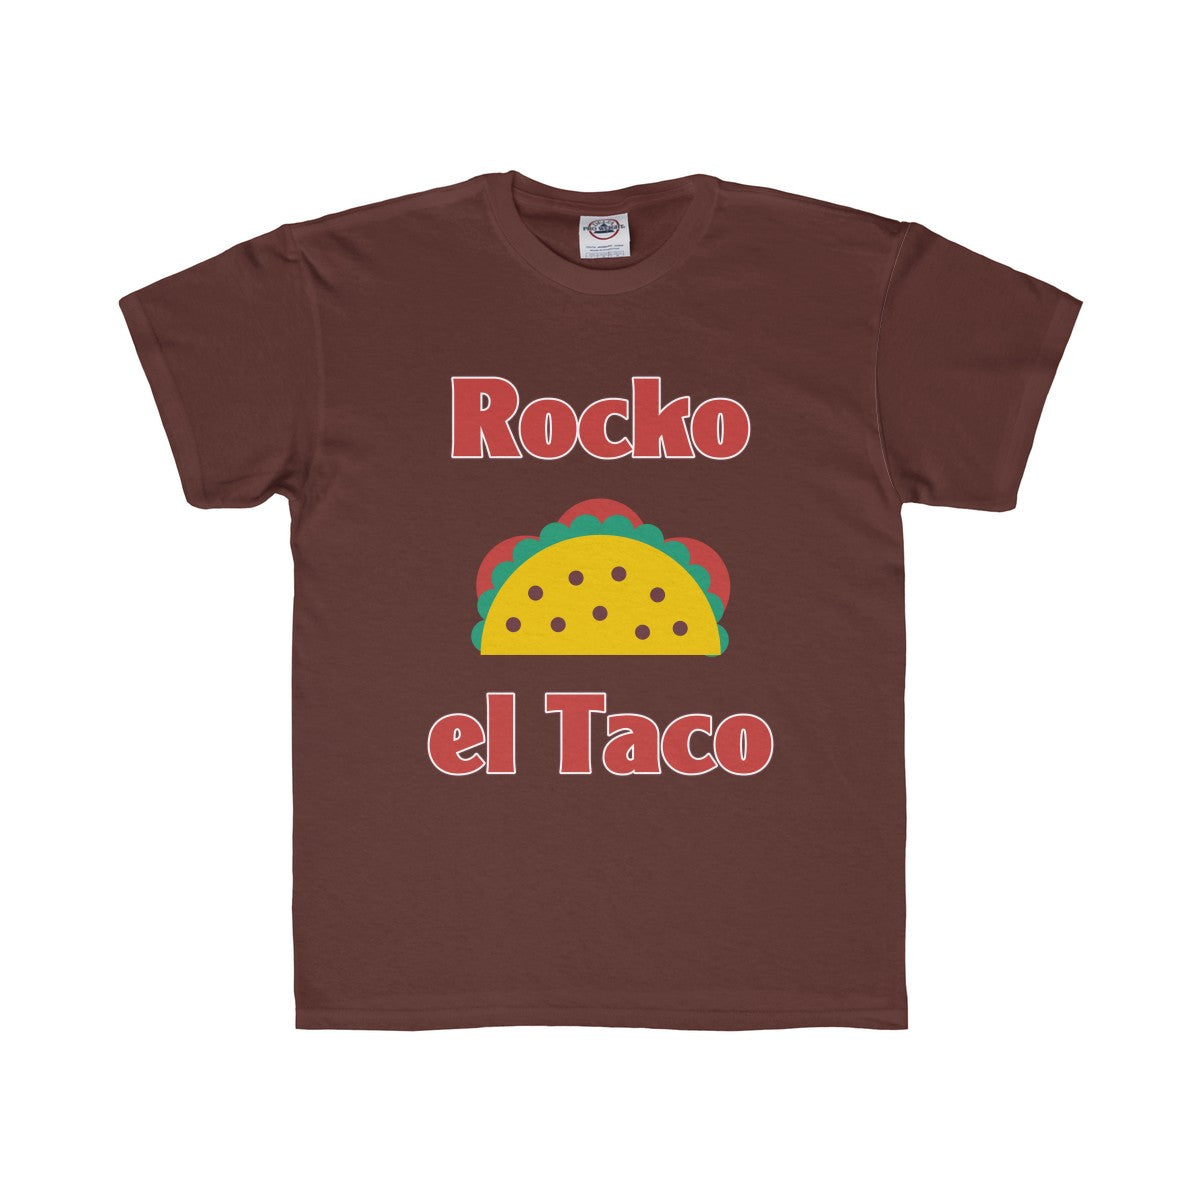 Rocko el Taco Youth Regular Fit Tee - PureDesignTees